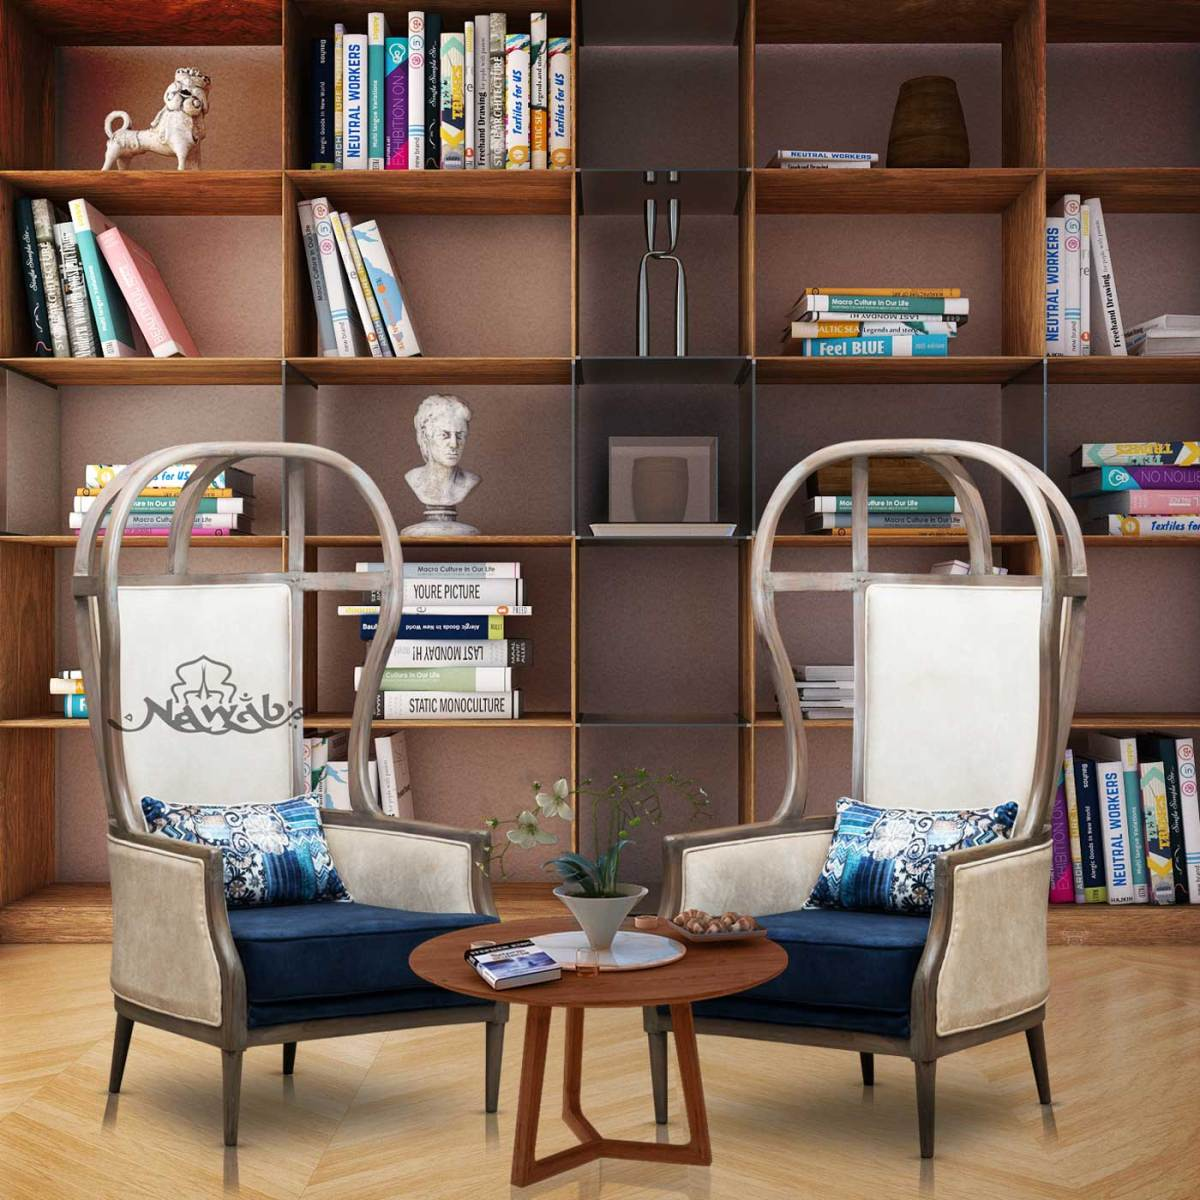 teak-wood-frame-distress-finish-suede-upholstery-blue-and-beige-background